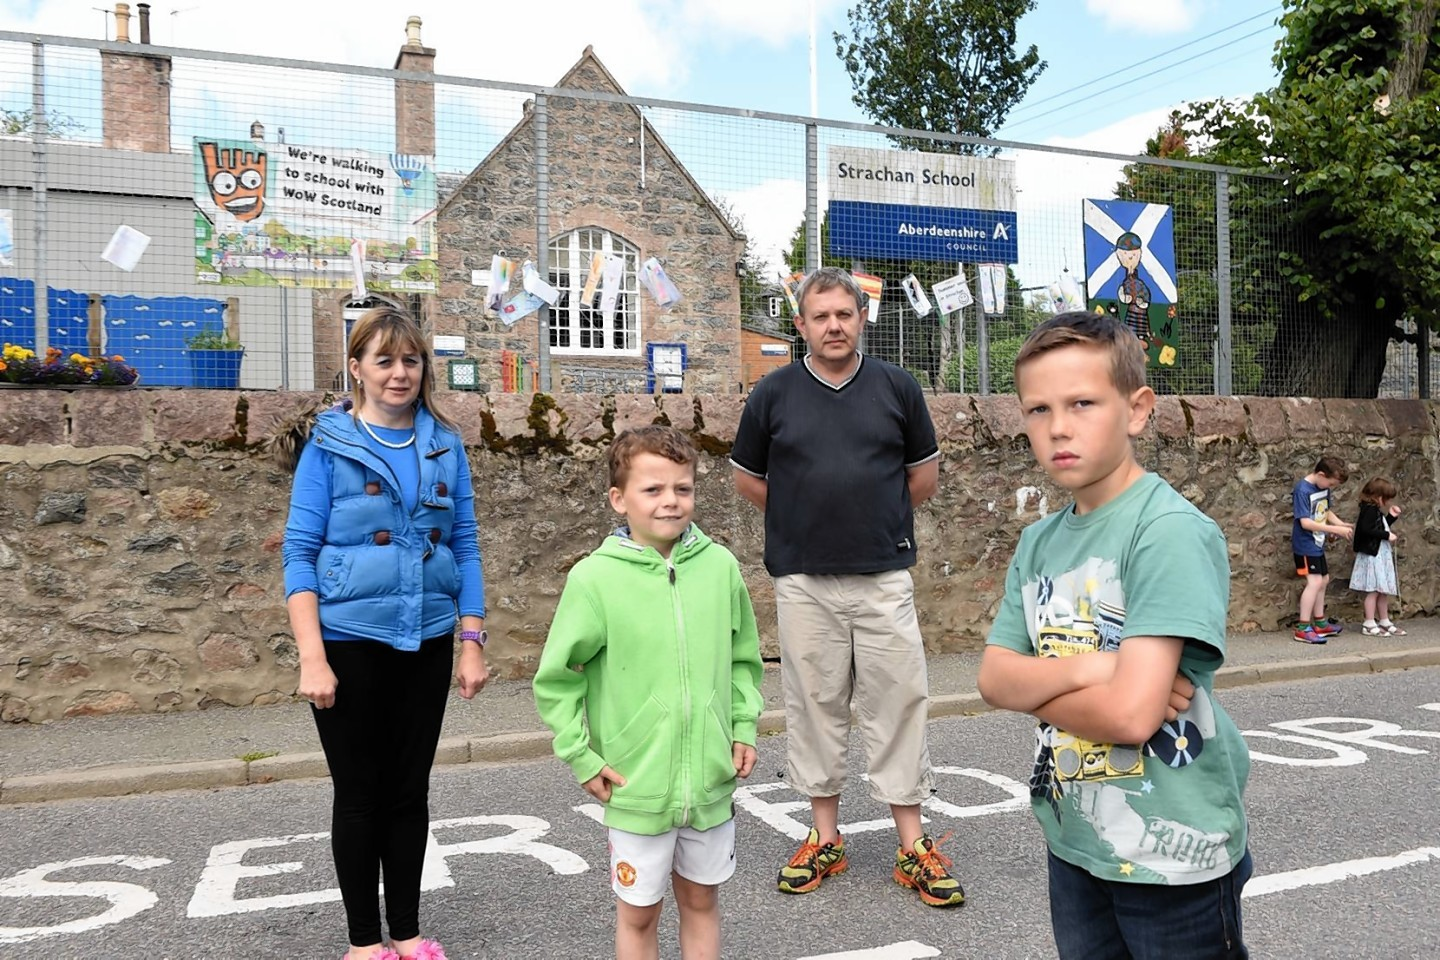 Parents were furious at decision to mothball Strachan Primary